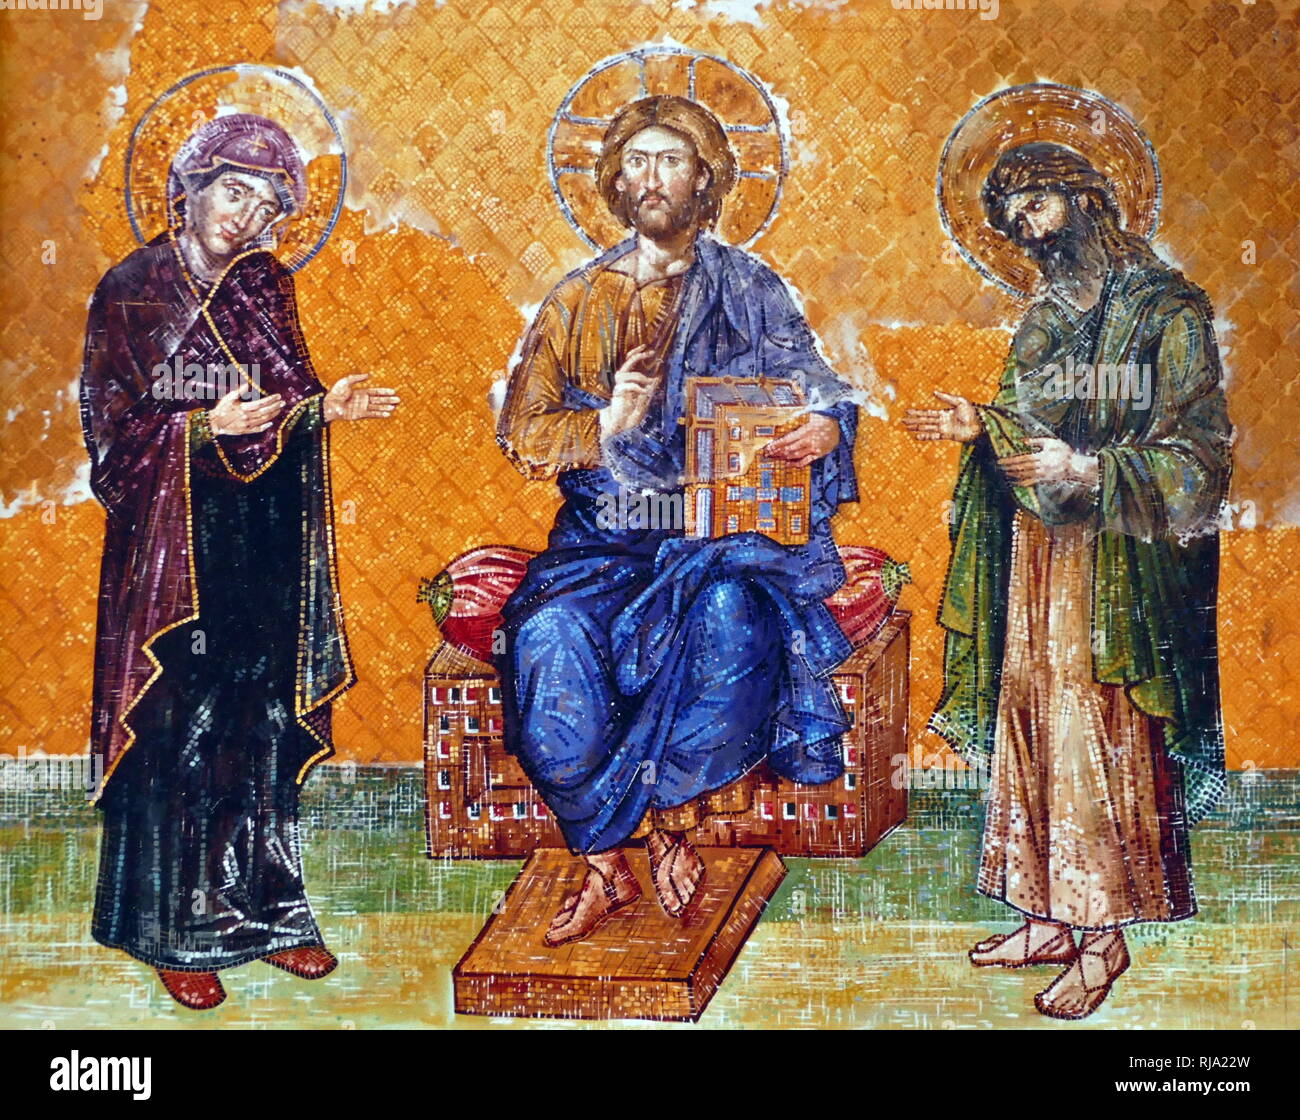 Virgin Mary; Jesus Christ and John the Baptist, depicted on an 13th Century, Byzantine mosaic; Hagia Sofia, Istanbul, Turkey. Hagia Sophia is a former Greek Orthodox, Christian church, later an Ottoman imperial mosque and now a museum. Built in 537 AD at the beginning of the Middle Ages, it was famous in particular for its massive dome. It was the world's largest building and an engineering marvel of its time. Stock Photo